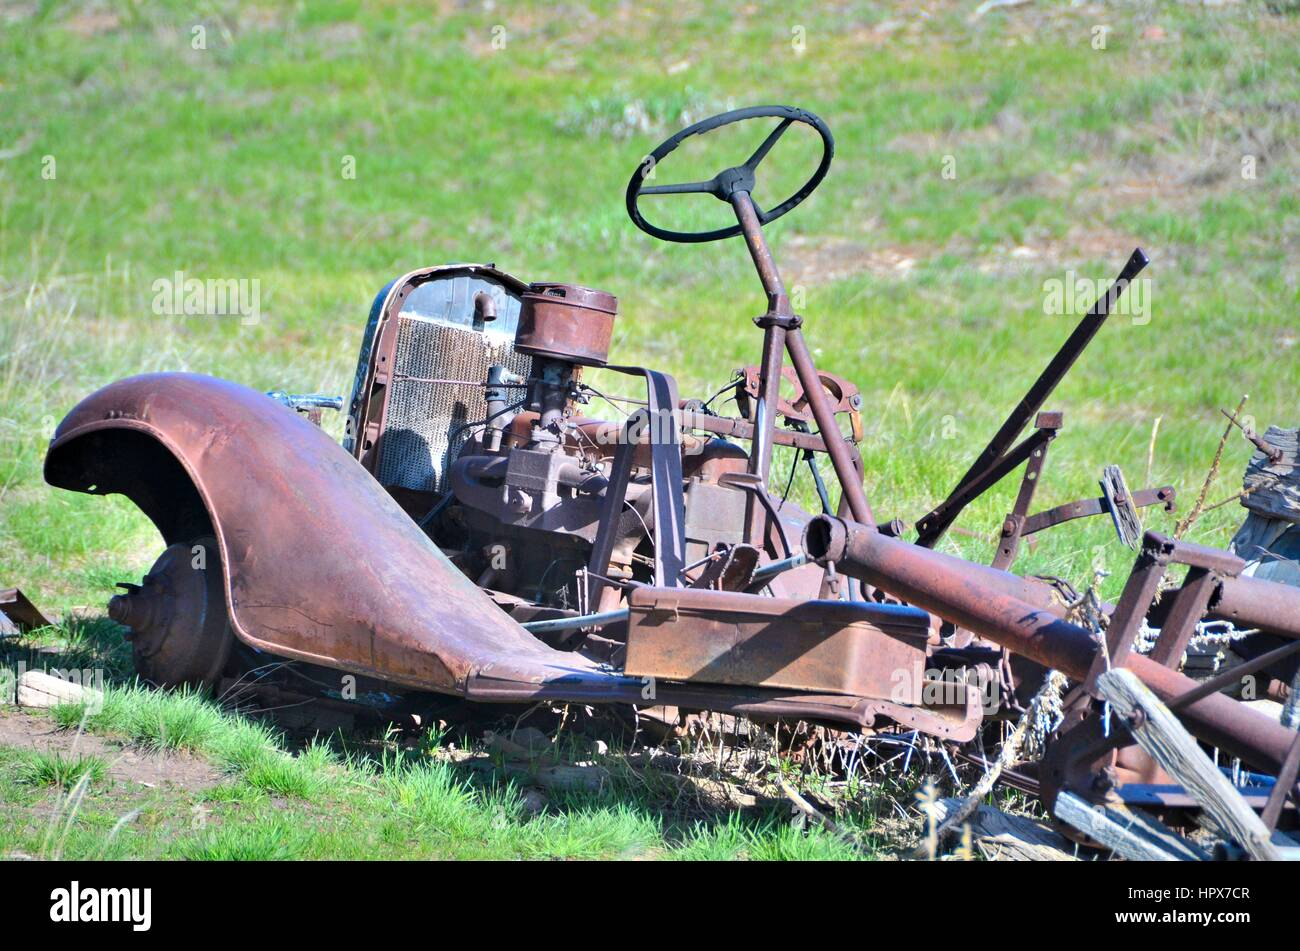 Old Rusted Junk Car - Stock Image